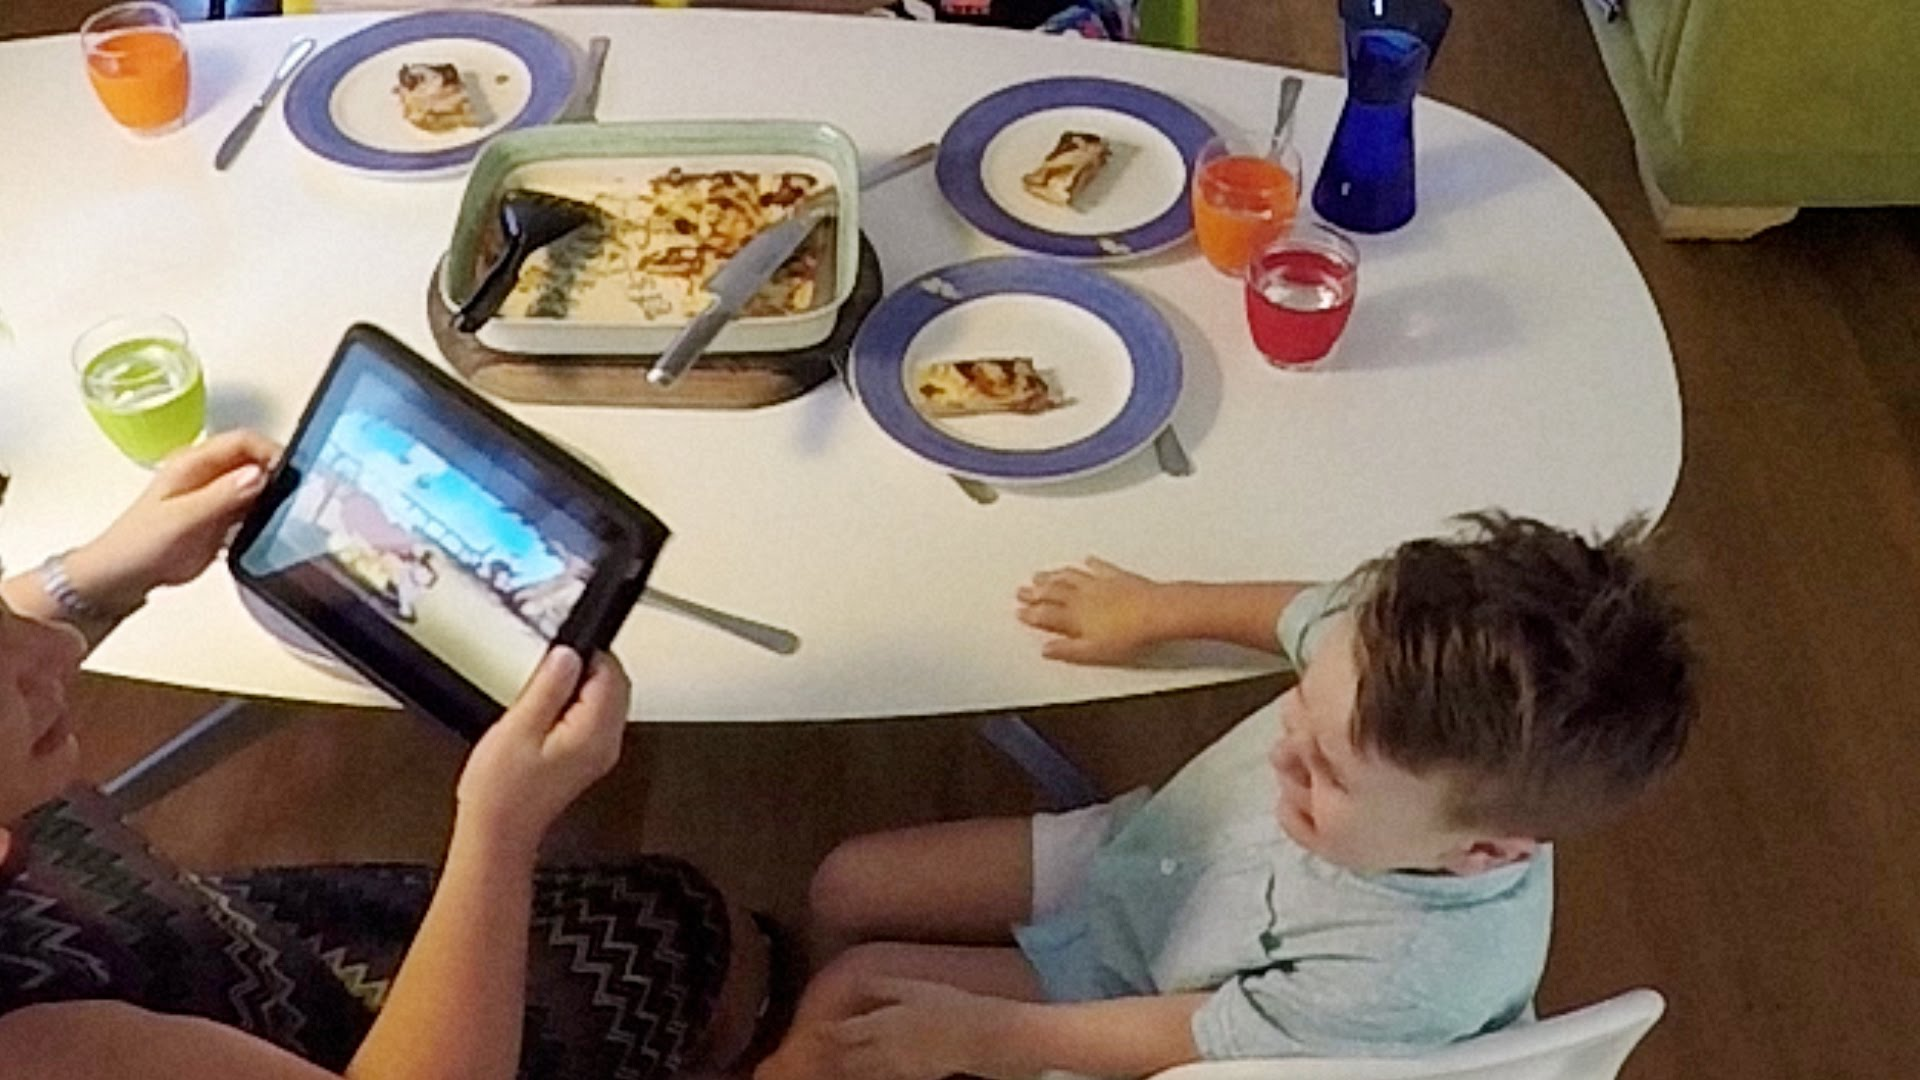 Technology has ruined family dinnertime but this device saves it